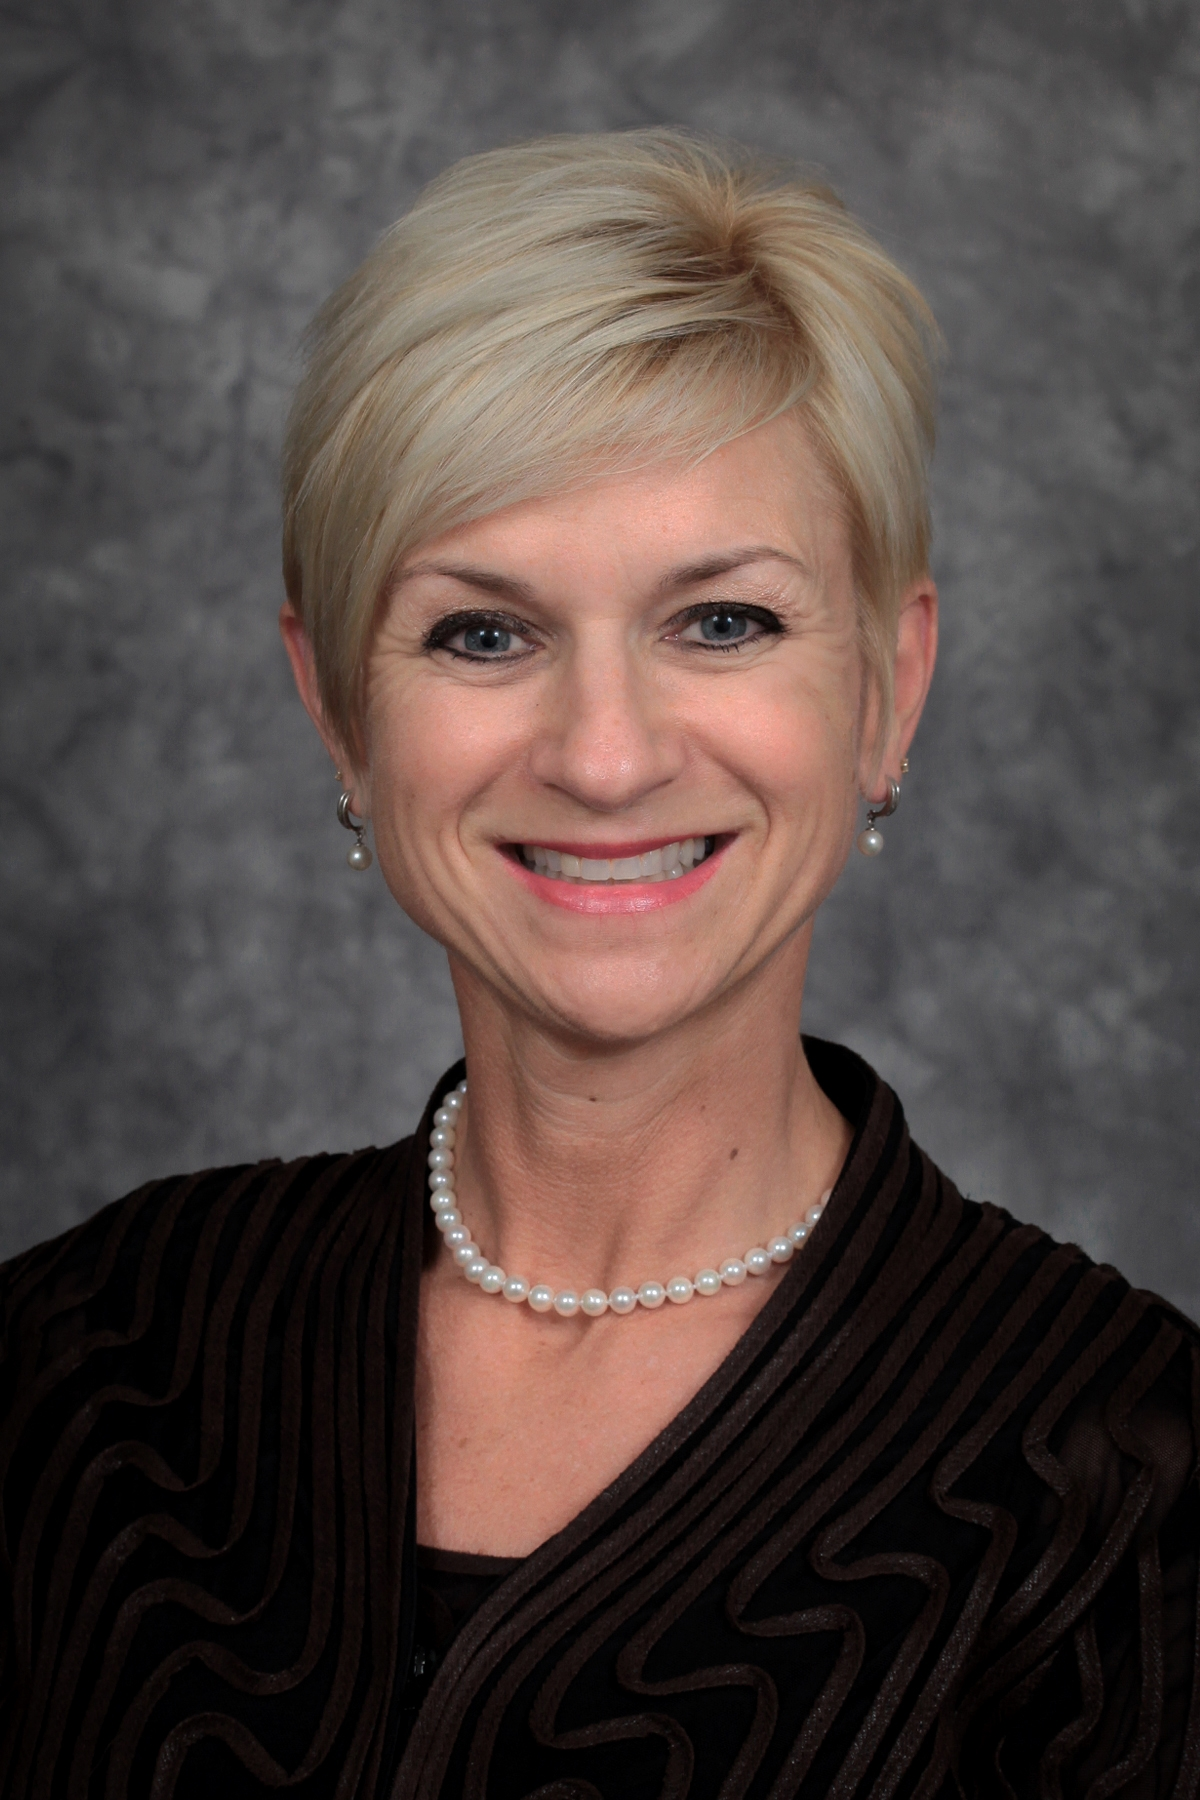 Susan Schmitt, senior vice president of human resources at Rockwell Automation